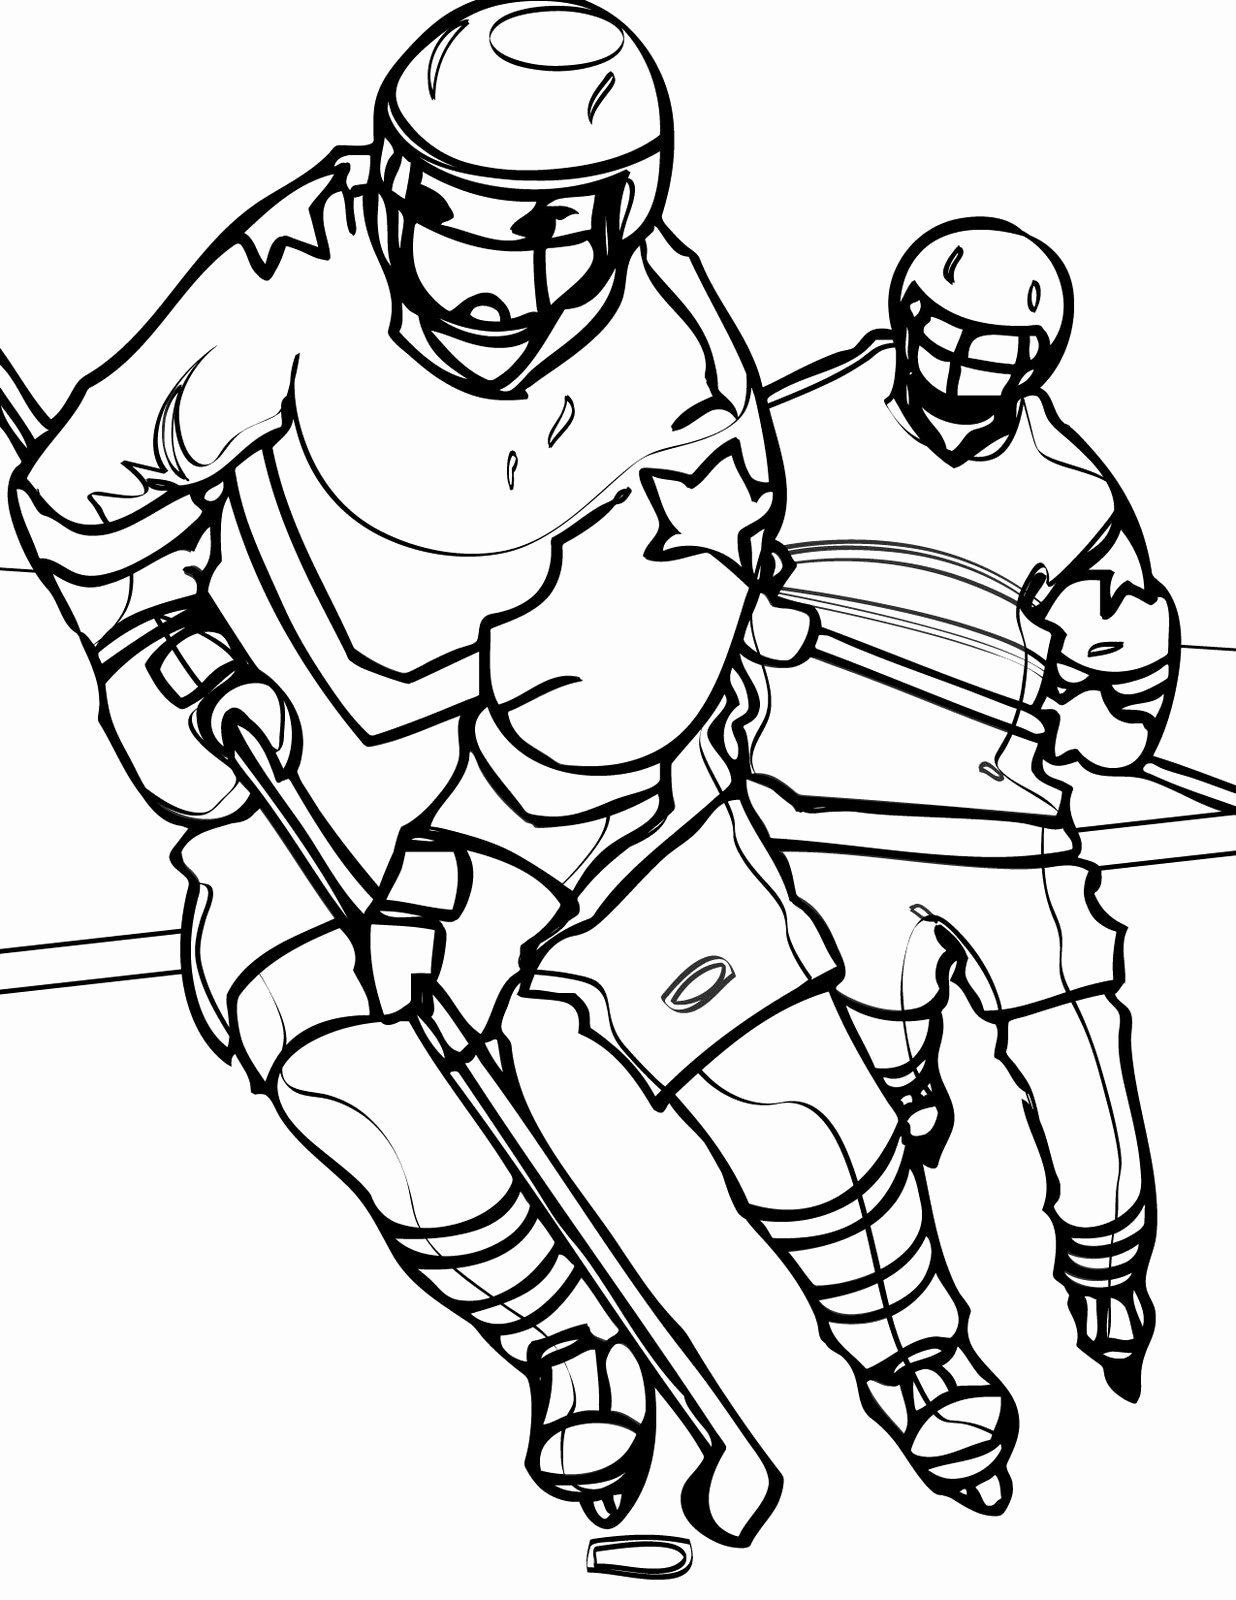 Hockey Coloring Activities Inspirational Children Sports Coloring